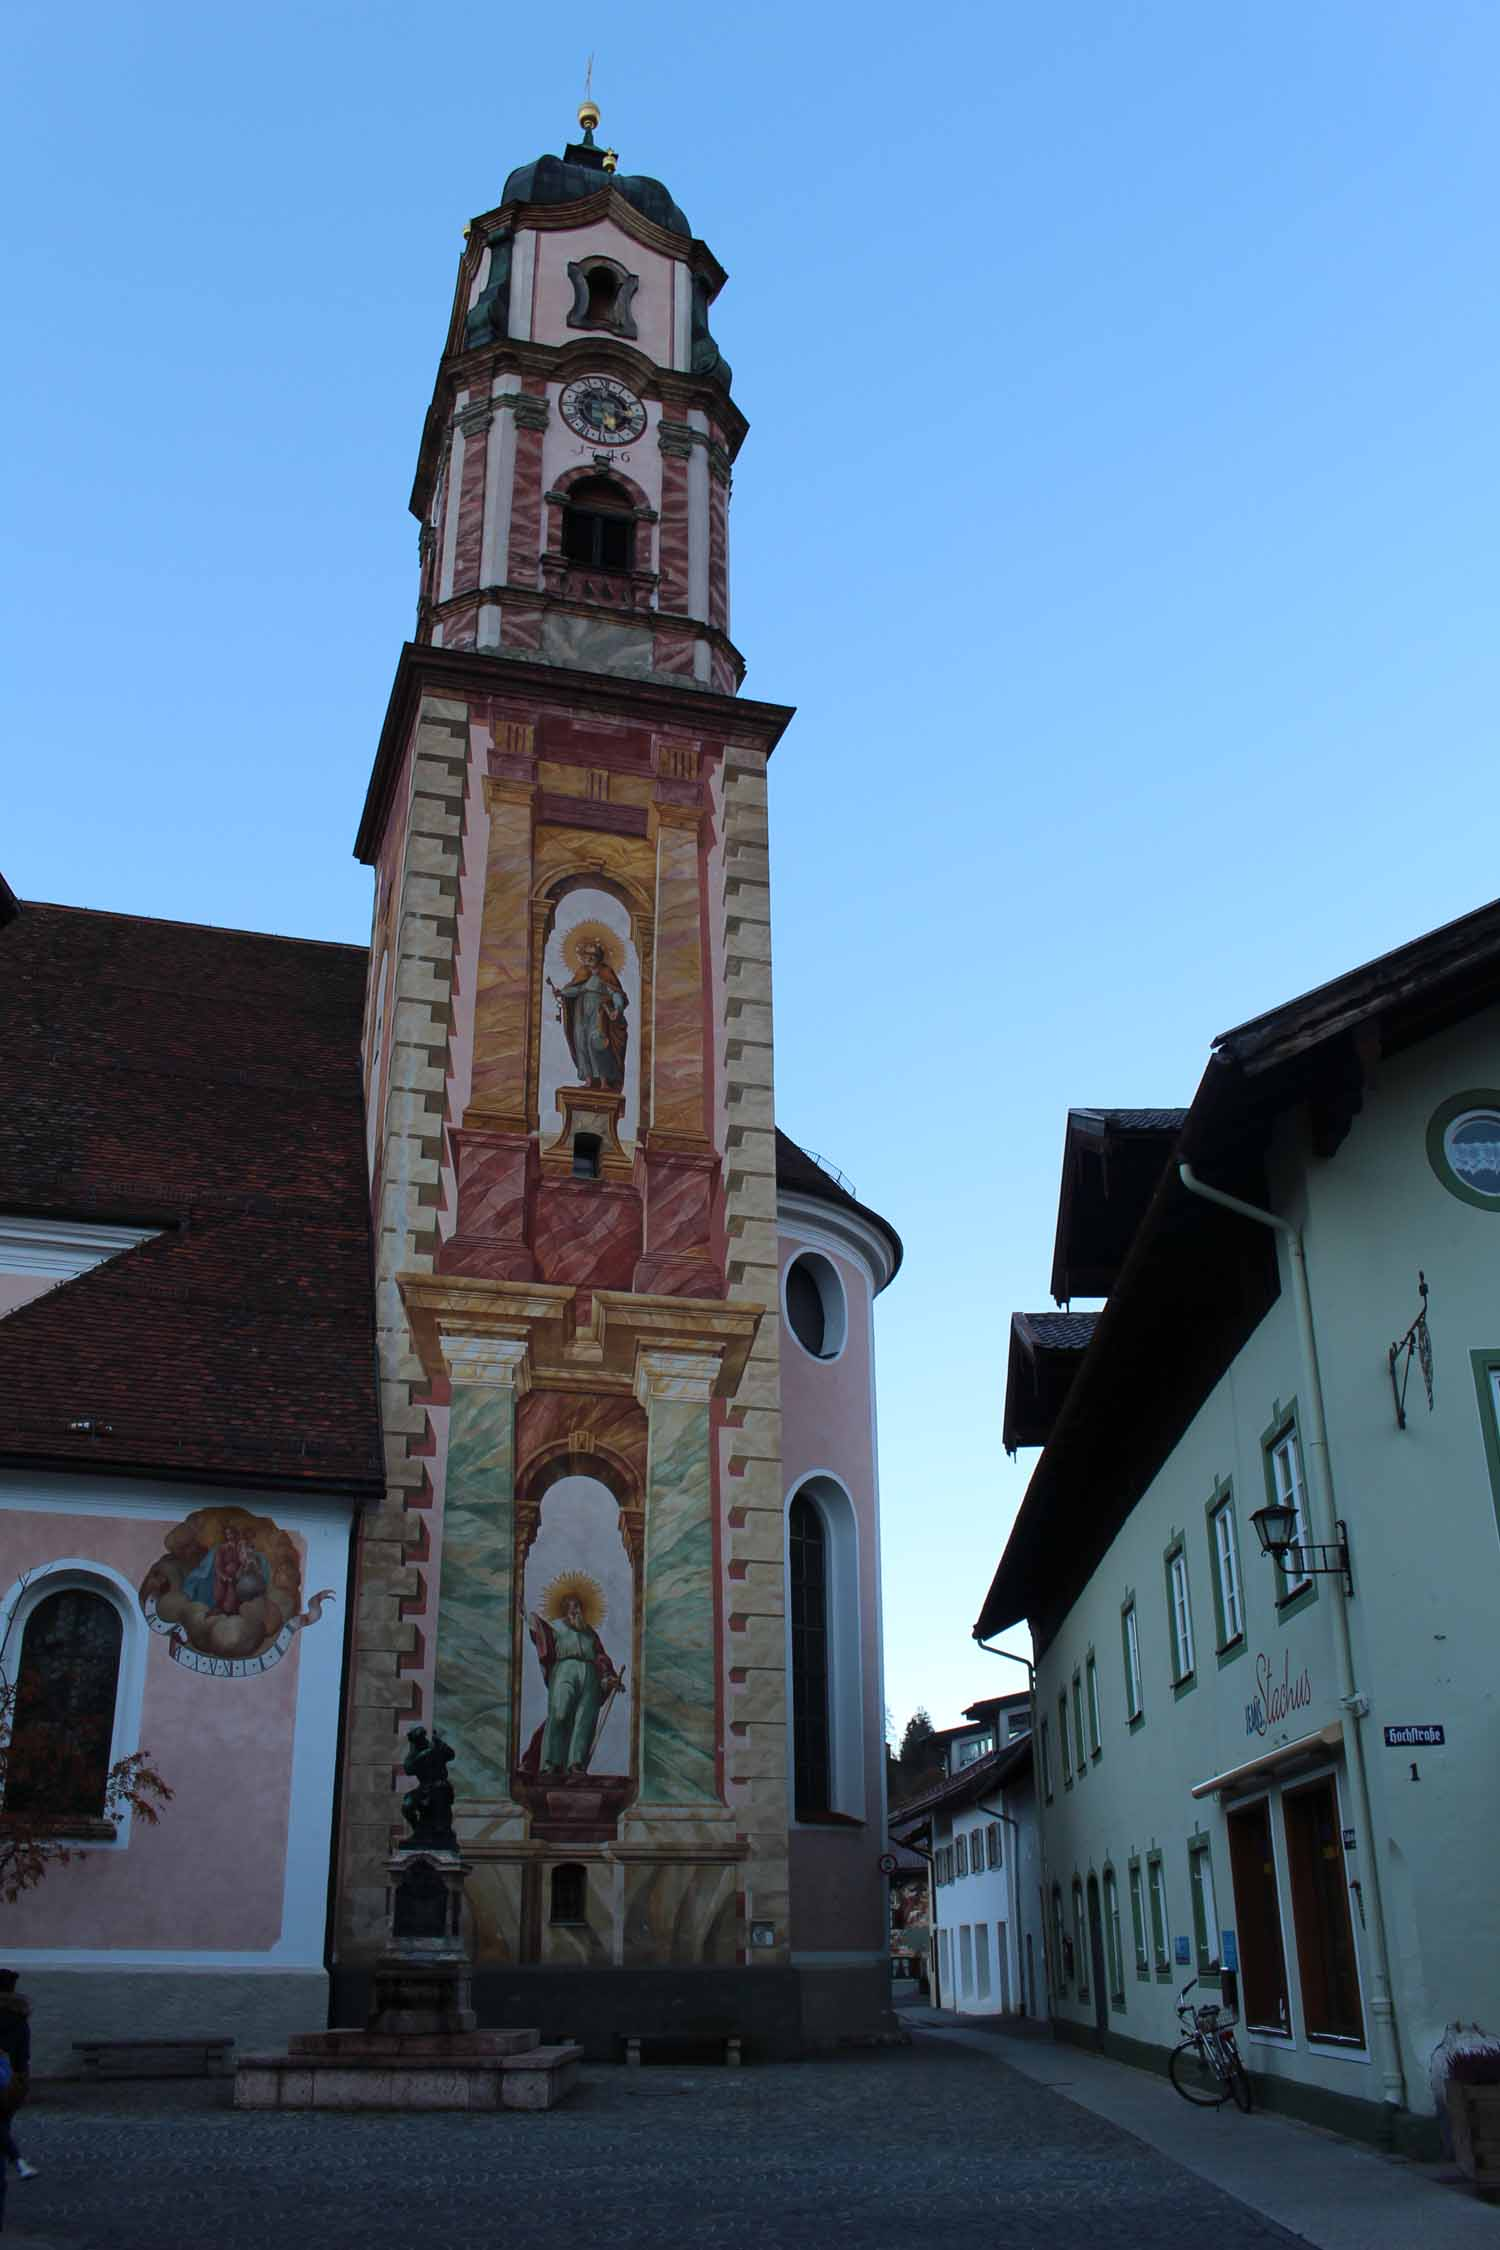 The church St-Pierre and St-Paul of Mittenwald